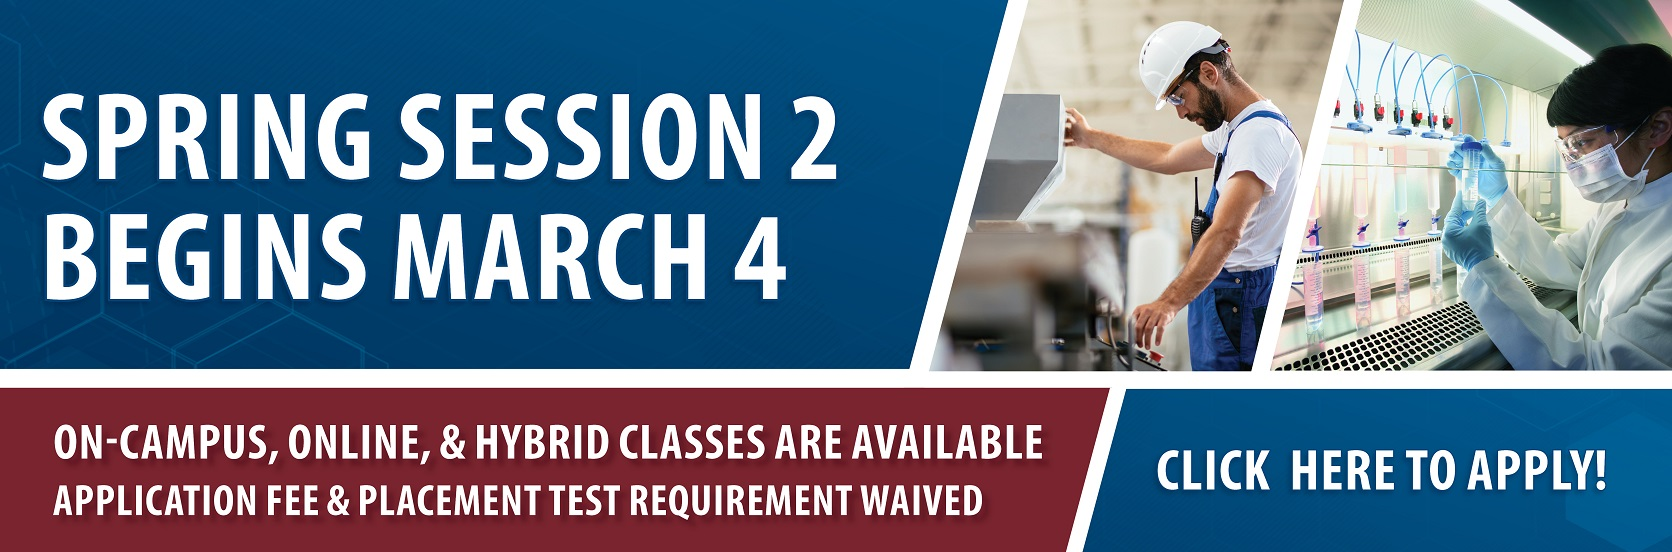 Spring Session 2 at CGTC begins March 4. Click toapply.